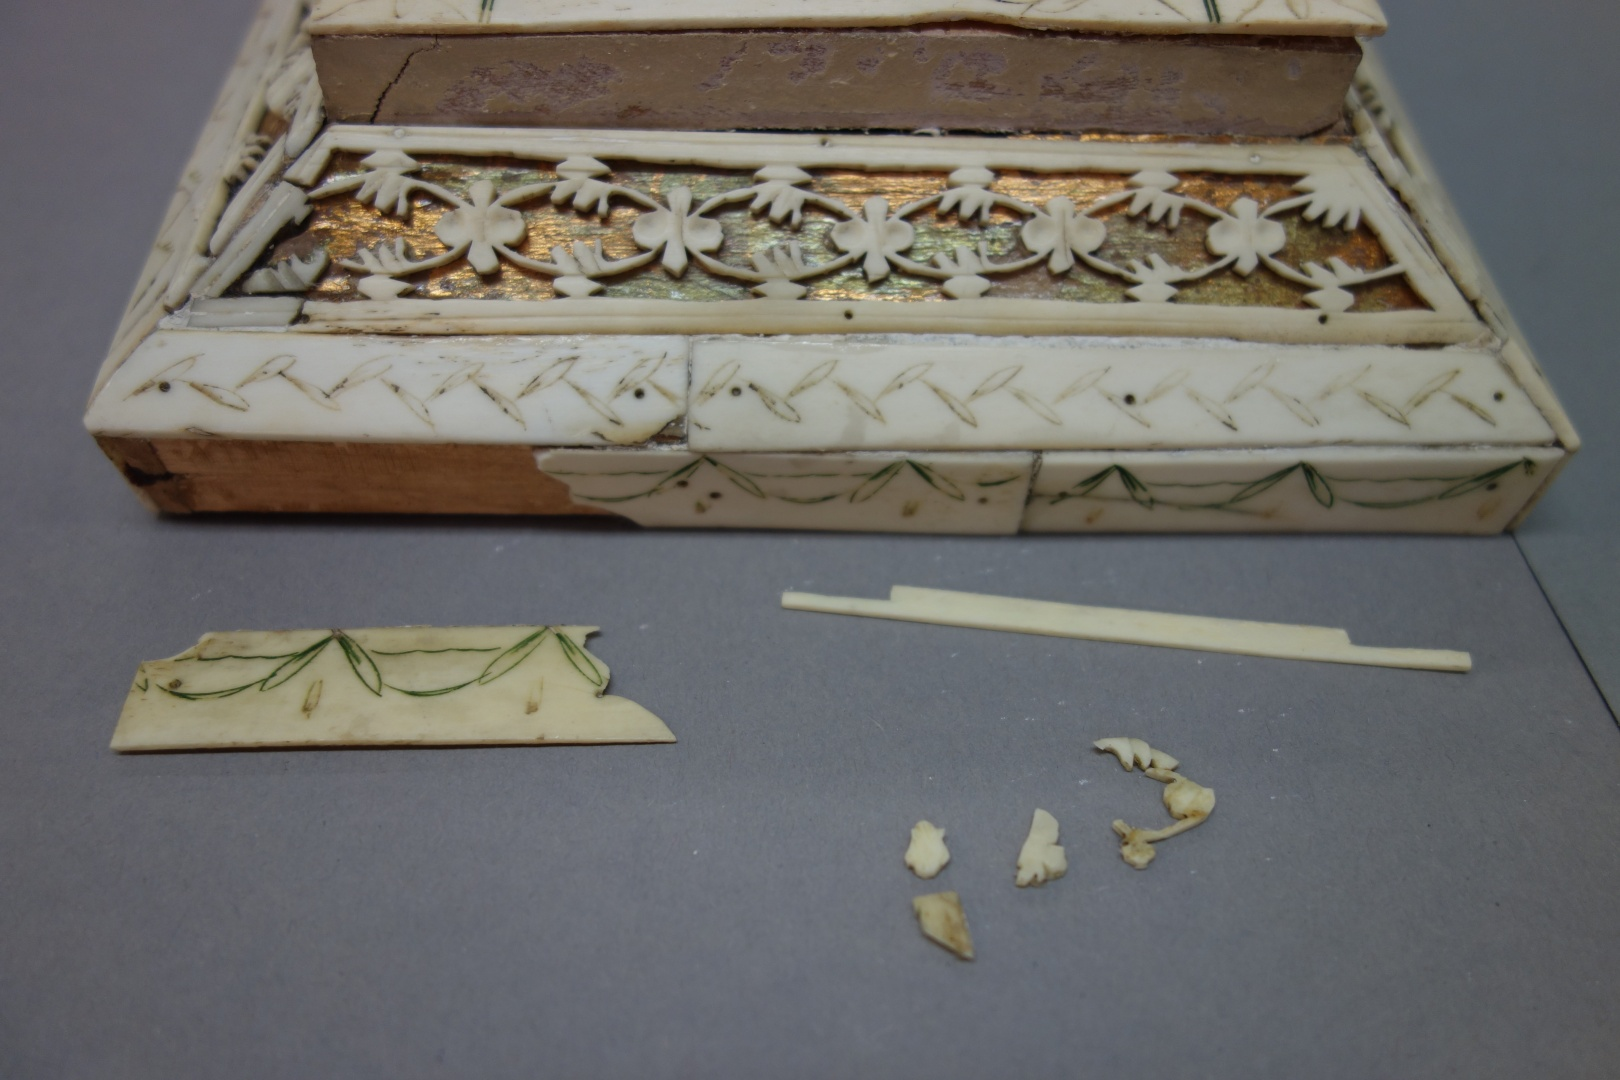 fig 9. Detached details and pieces of bone lace from the lid of the casket. Before fixing them, the casket was cleansed of loose dust. The surface cleansing was done with minimally dampened tampons